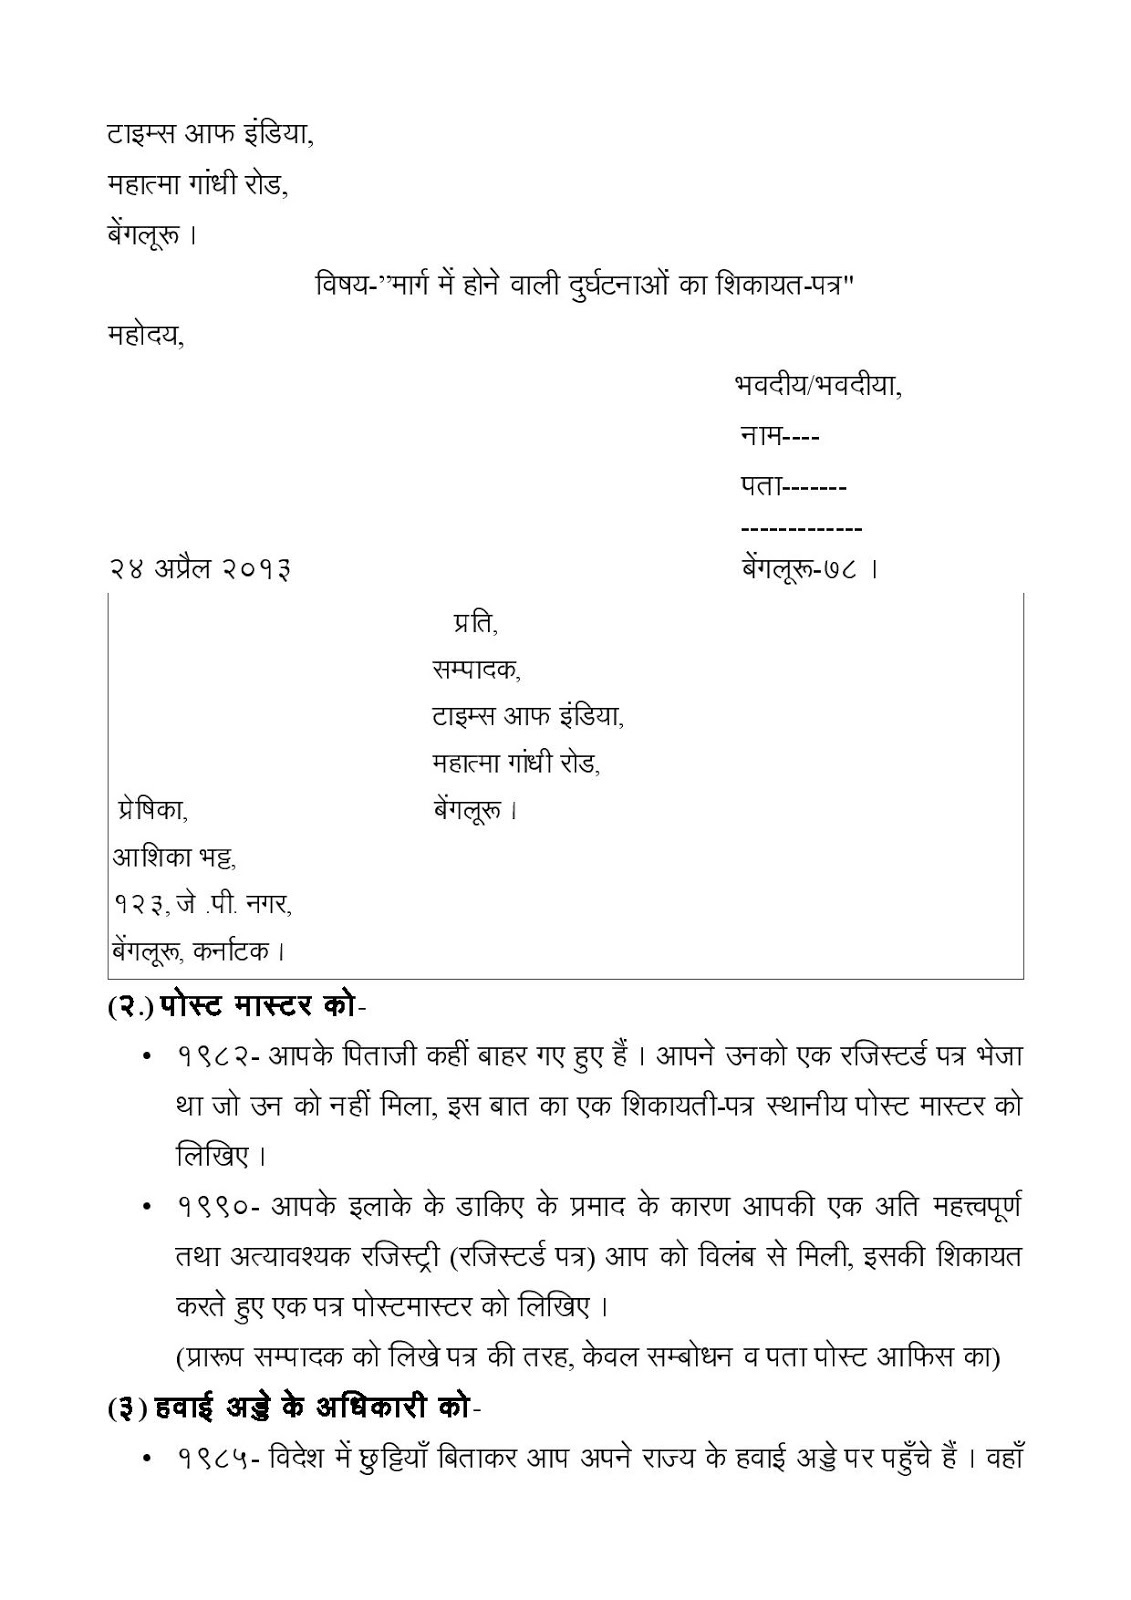 Letter writing services hindi class 10